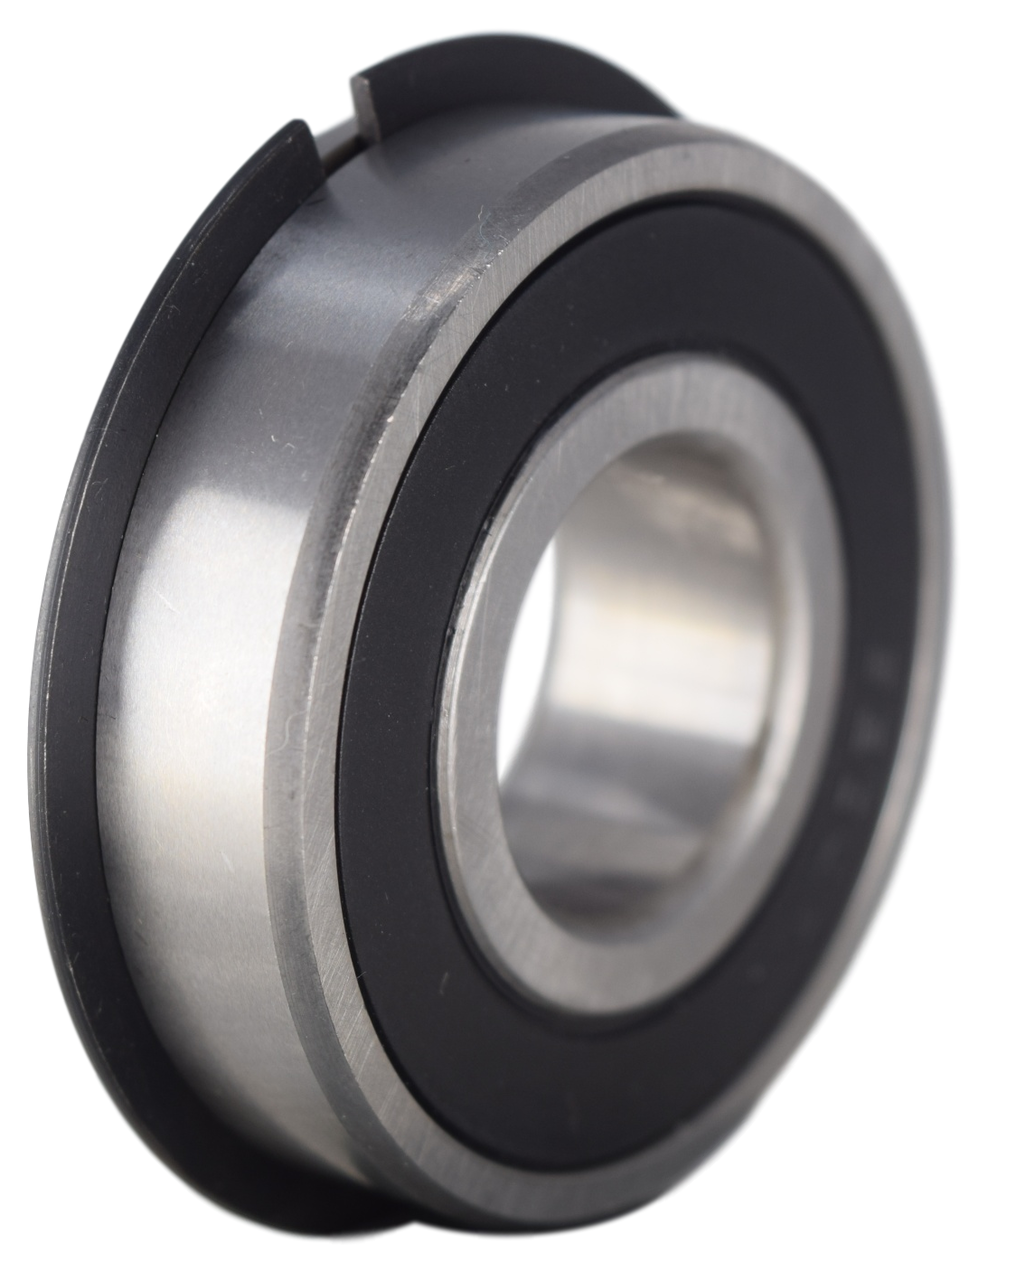 6204-2RSNR Radial Ball Bearing with Snap Ring 20X47X14 Image